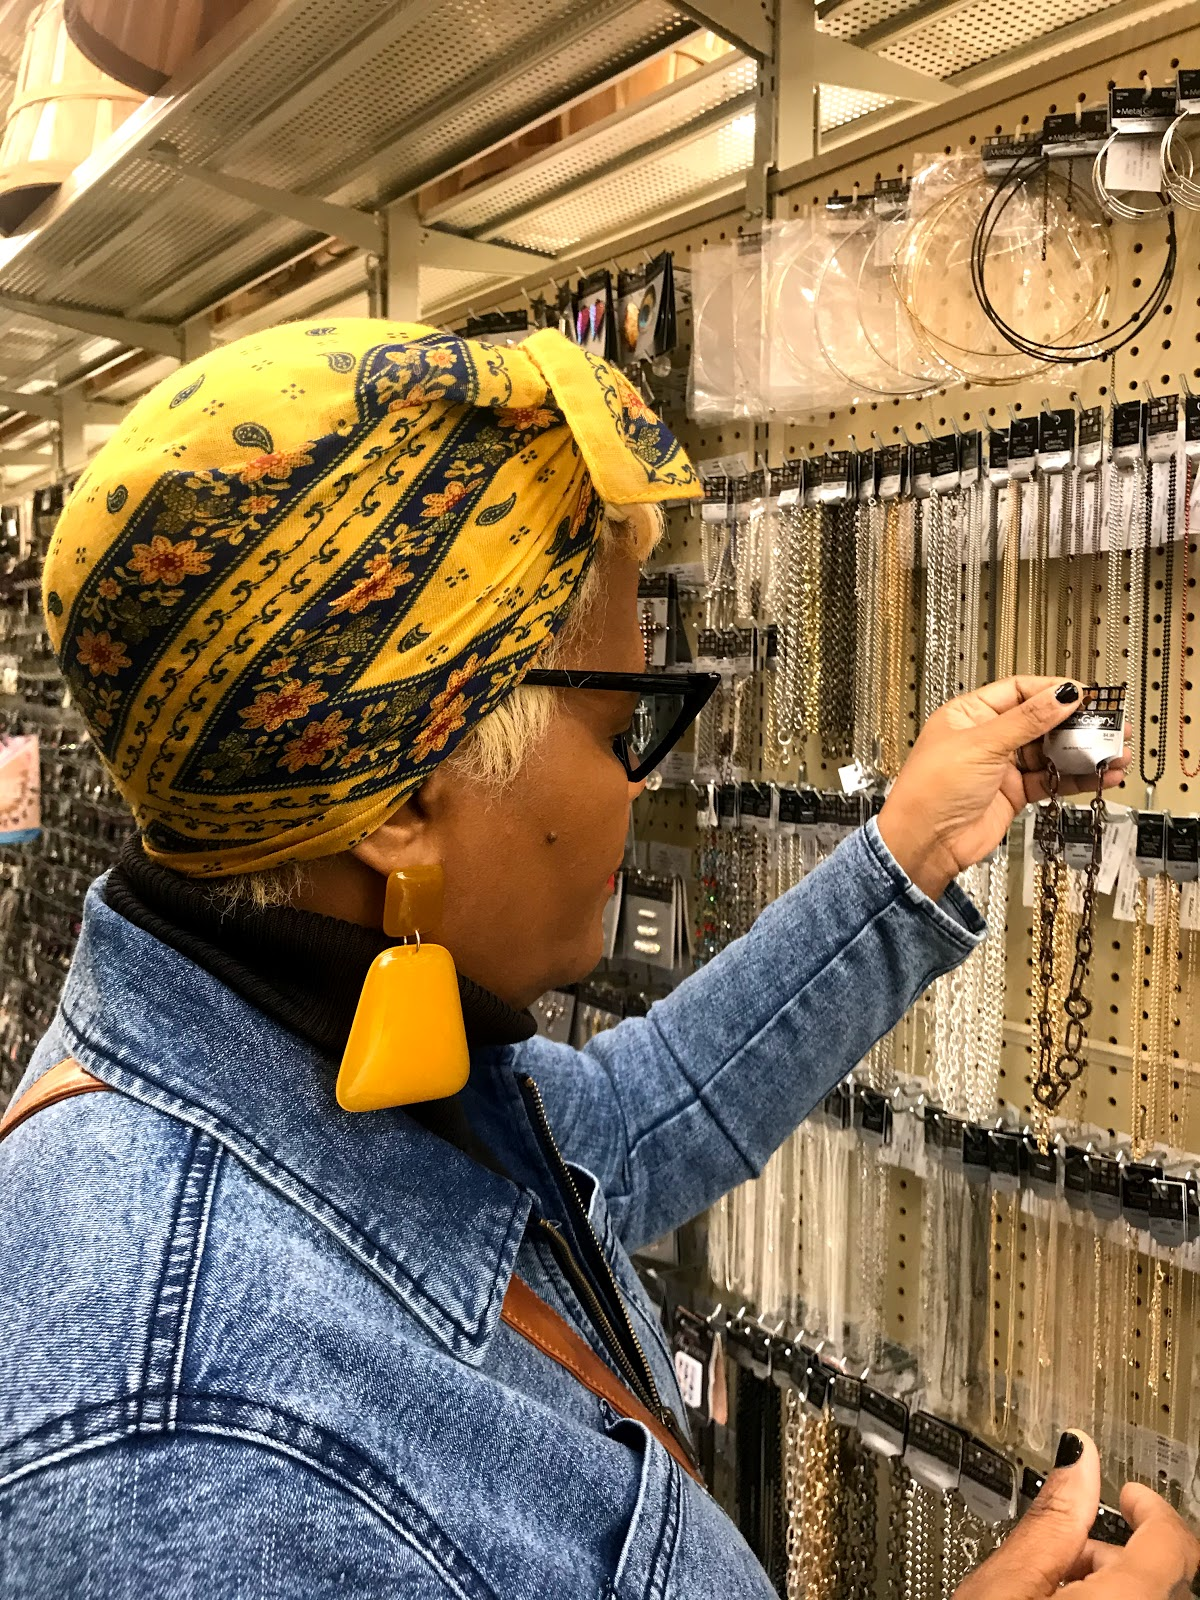 Browsing the jewelry section at the craft store. Looking for jewelry ideas